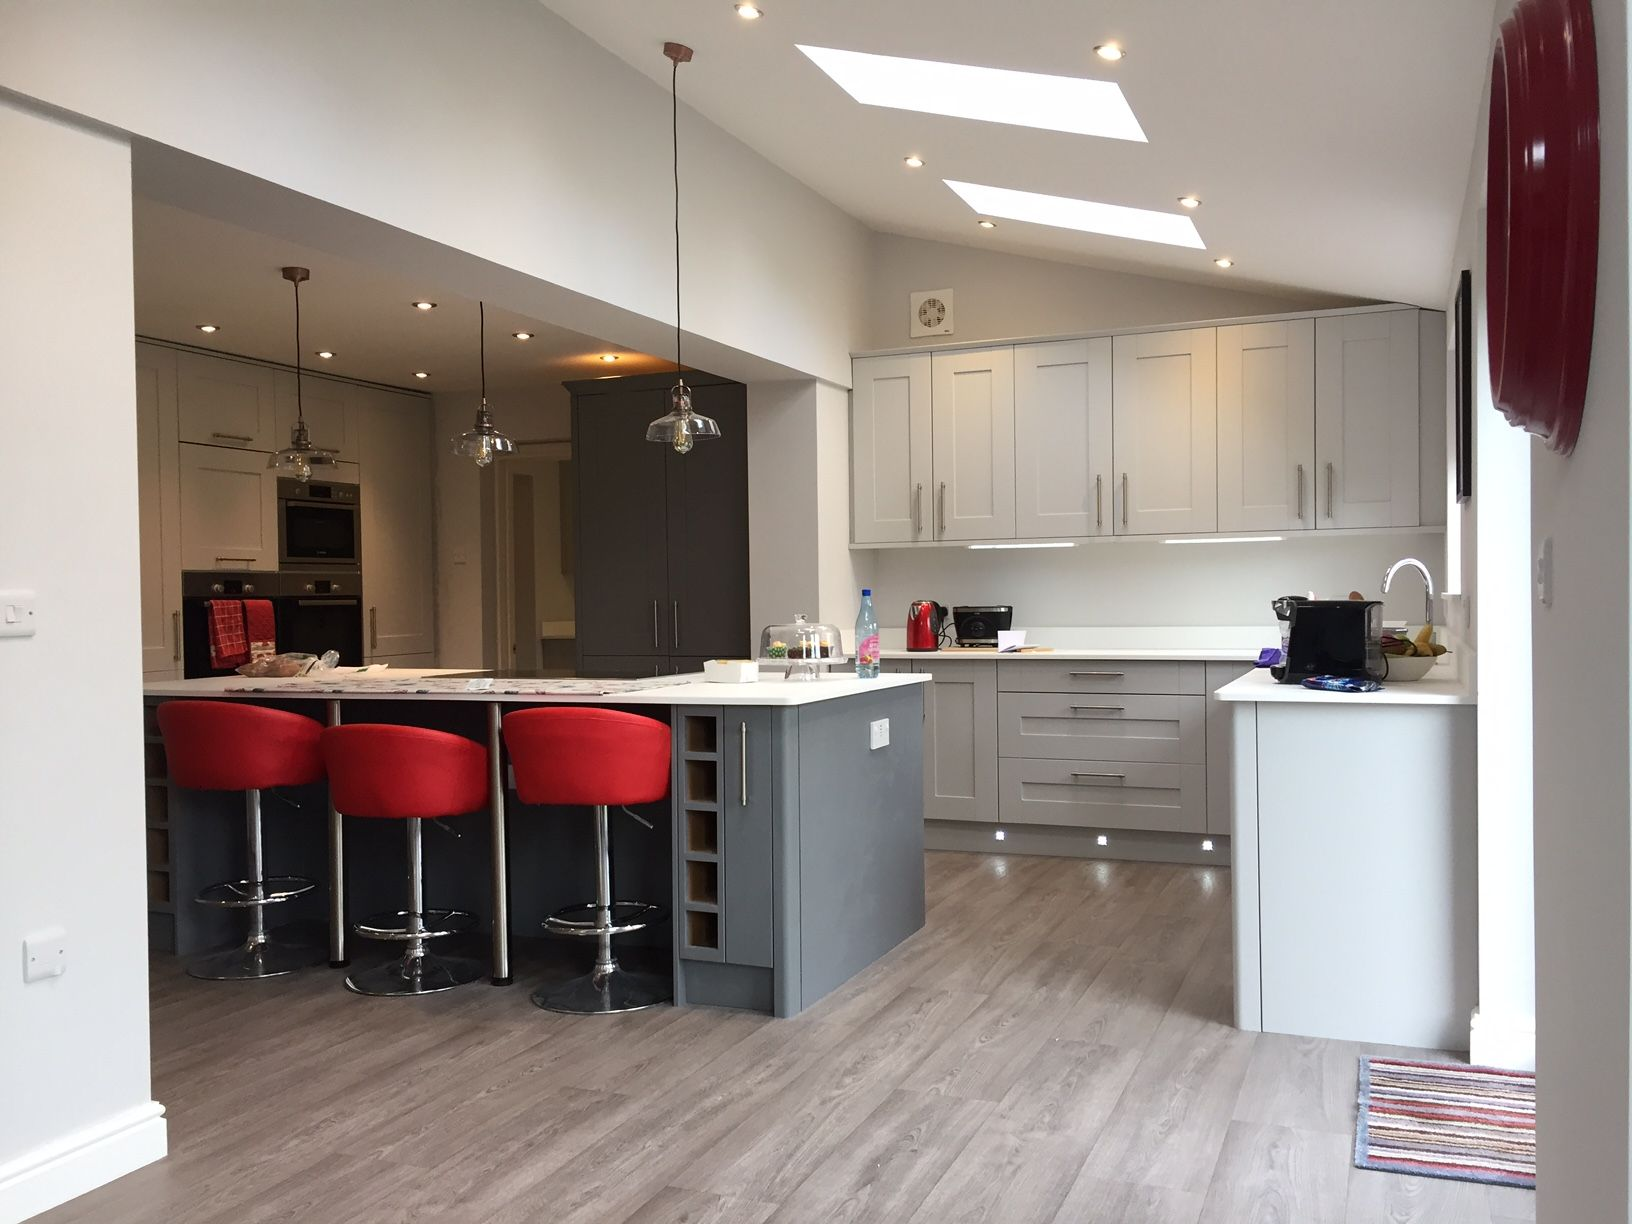 Kitchen supplied by Benchmarx Leek. Painted shaker